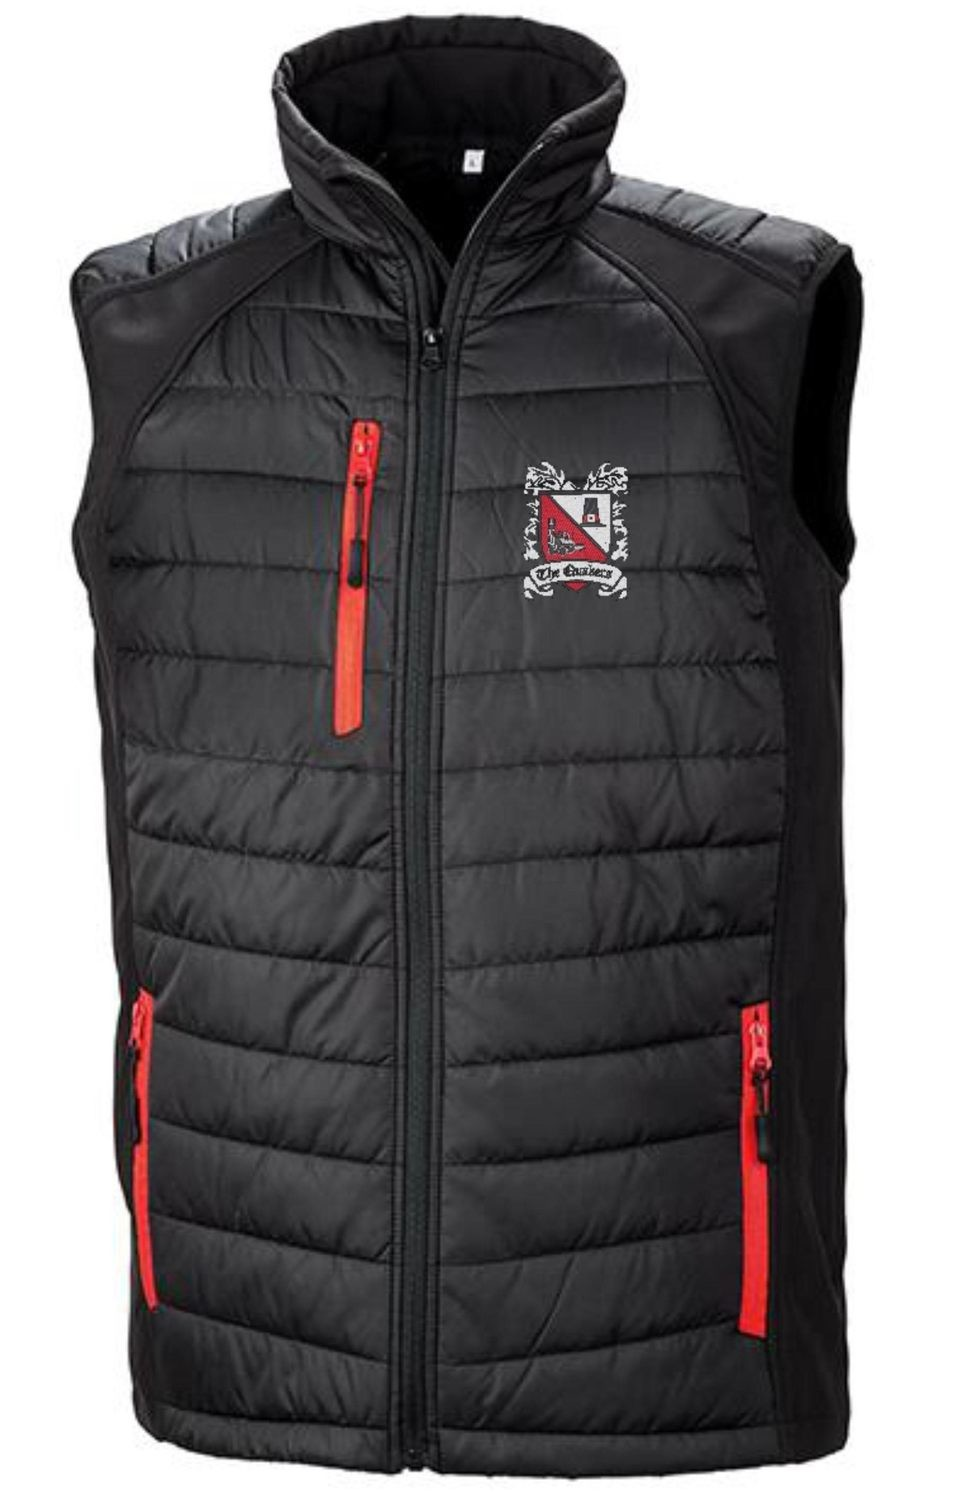 Gilet (Ordered On Request)